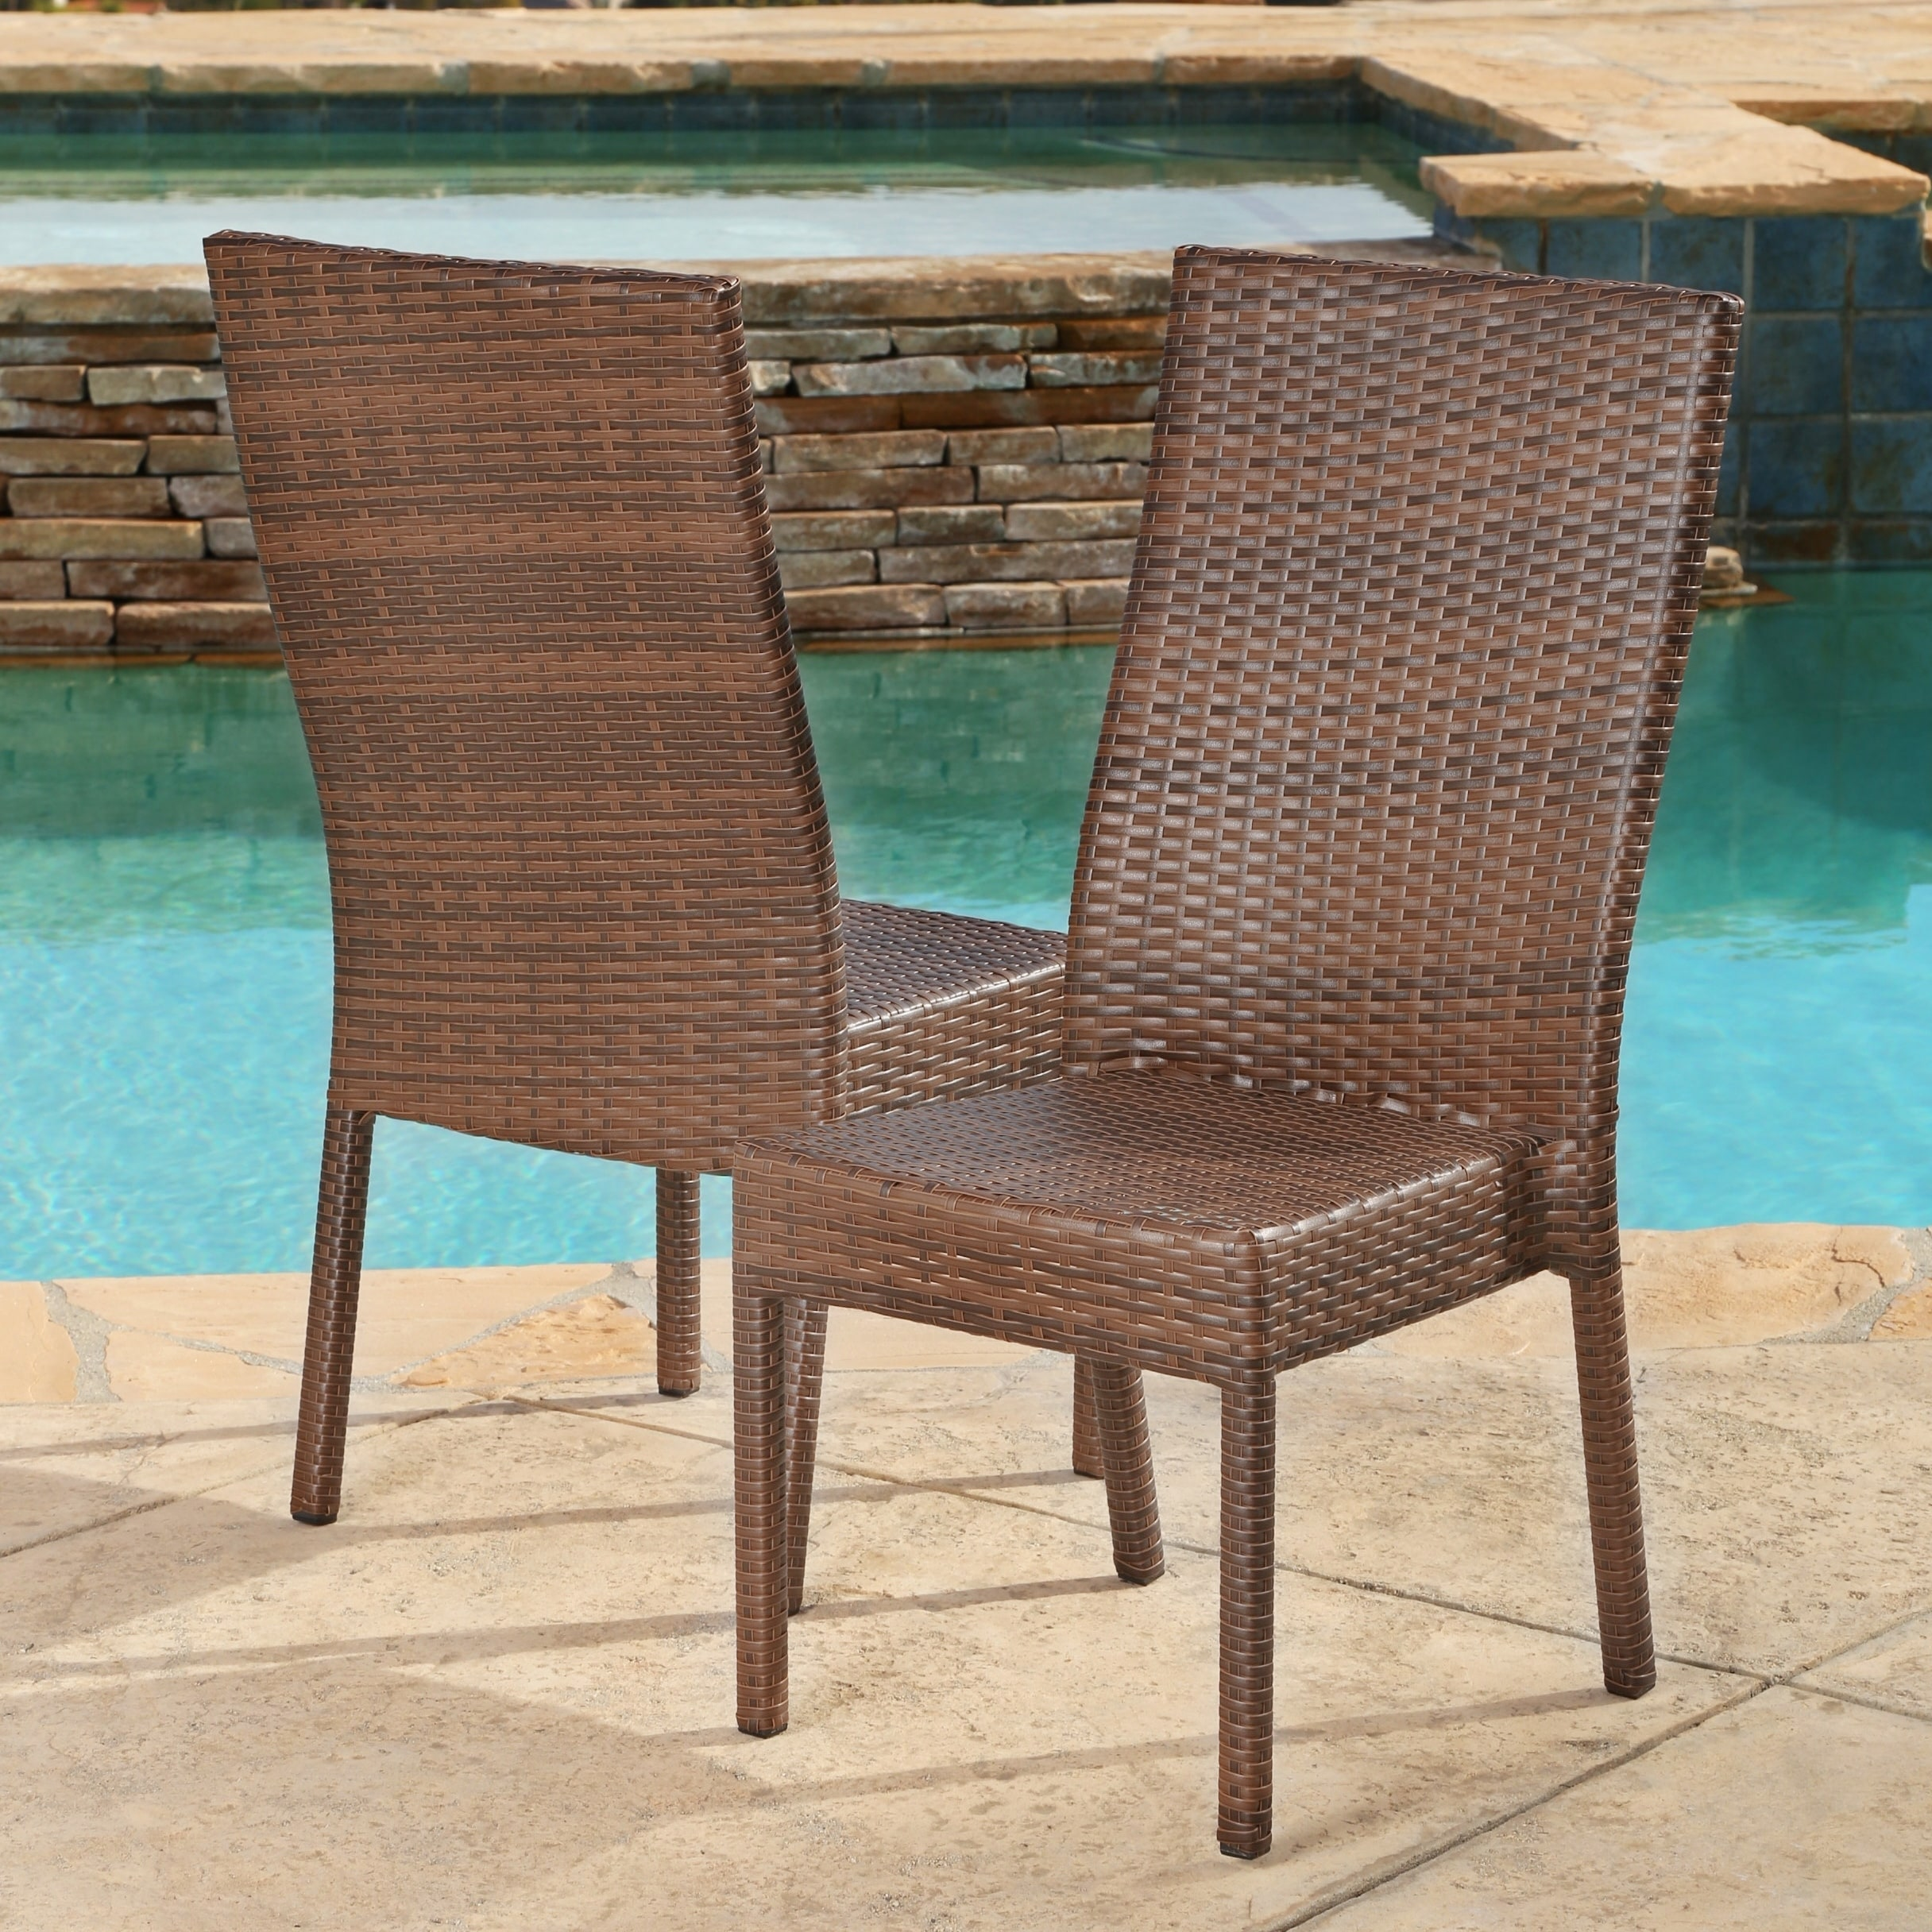 ideas caraquet fit particular fresh outdoor in decor covers wayfair chair dining of sure room chairs set home wicker